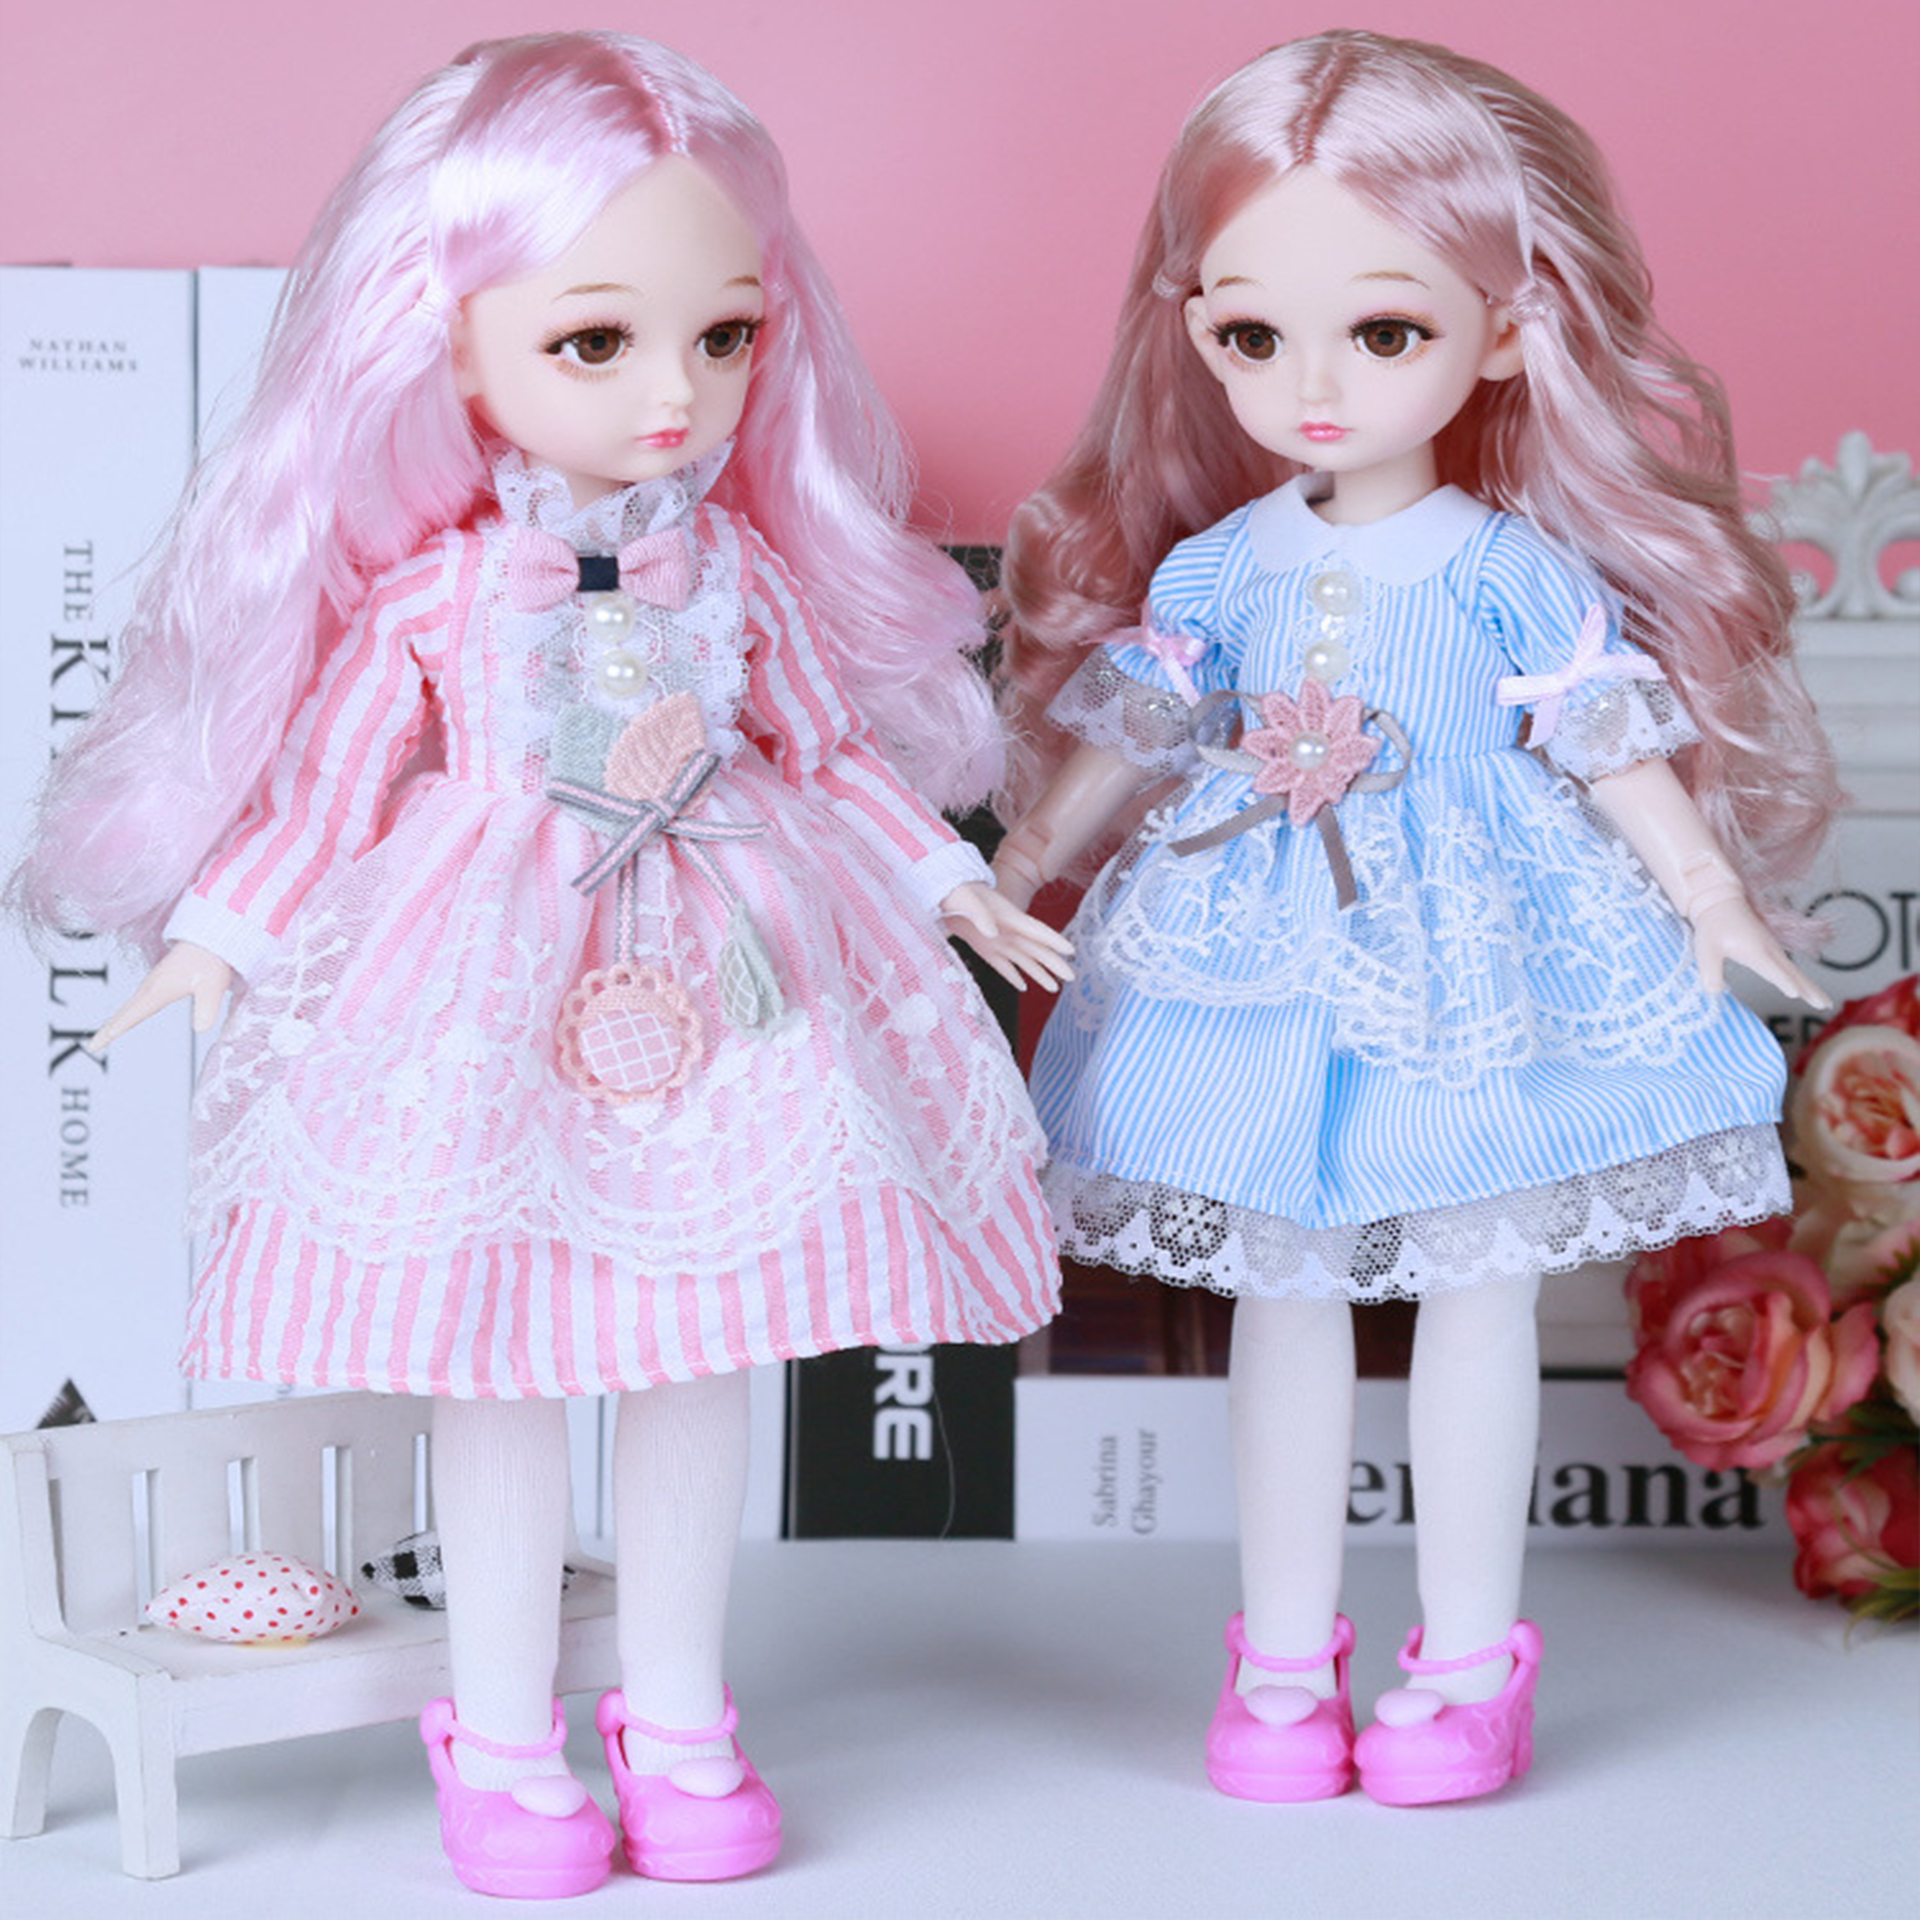 30cm Princess BJD Doll Little <font><b>Girl</b></font> Cute <font><b>Dress</b></font> <font><b>15</b></font> Movable Jointed Dolls Toys Fahion <font><b>Dress</b></font> Beauty BJD Hair DIY Toy Gift <font><b>for</b></font> <font><b>Girls</b></font> image